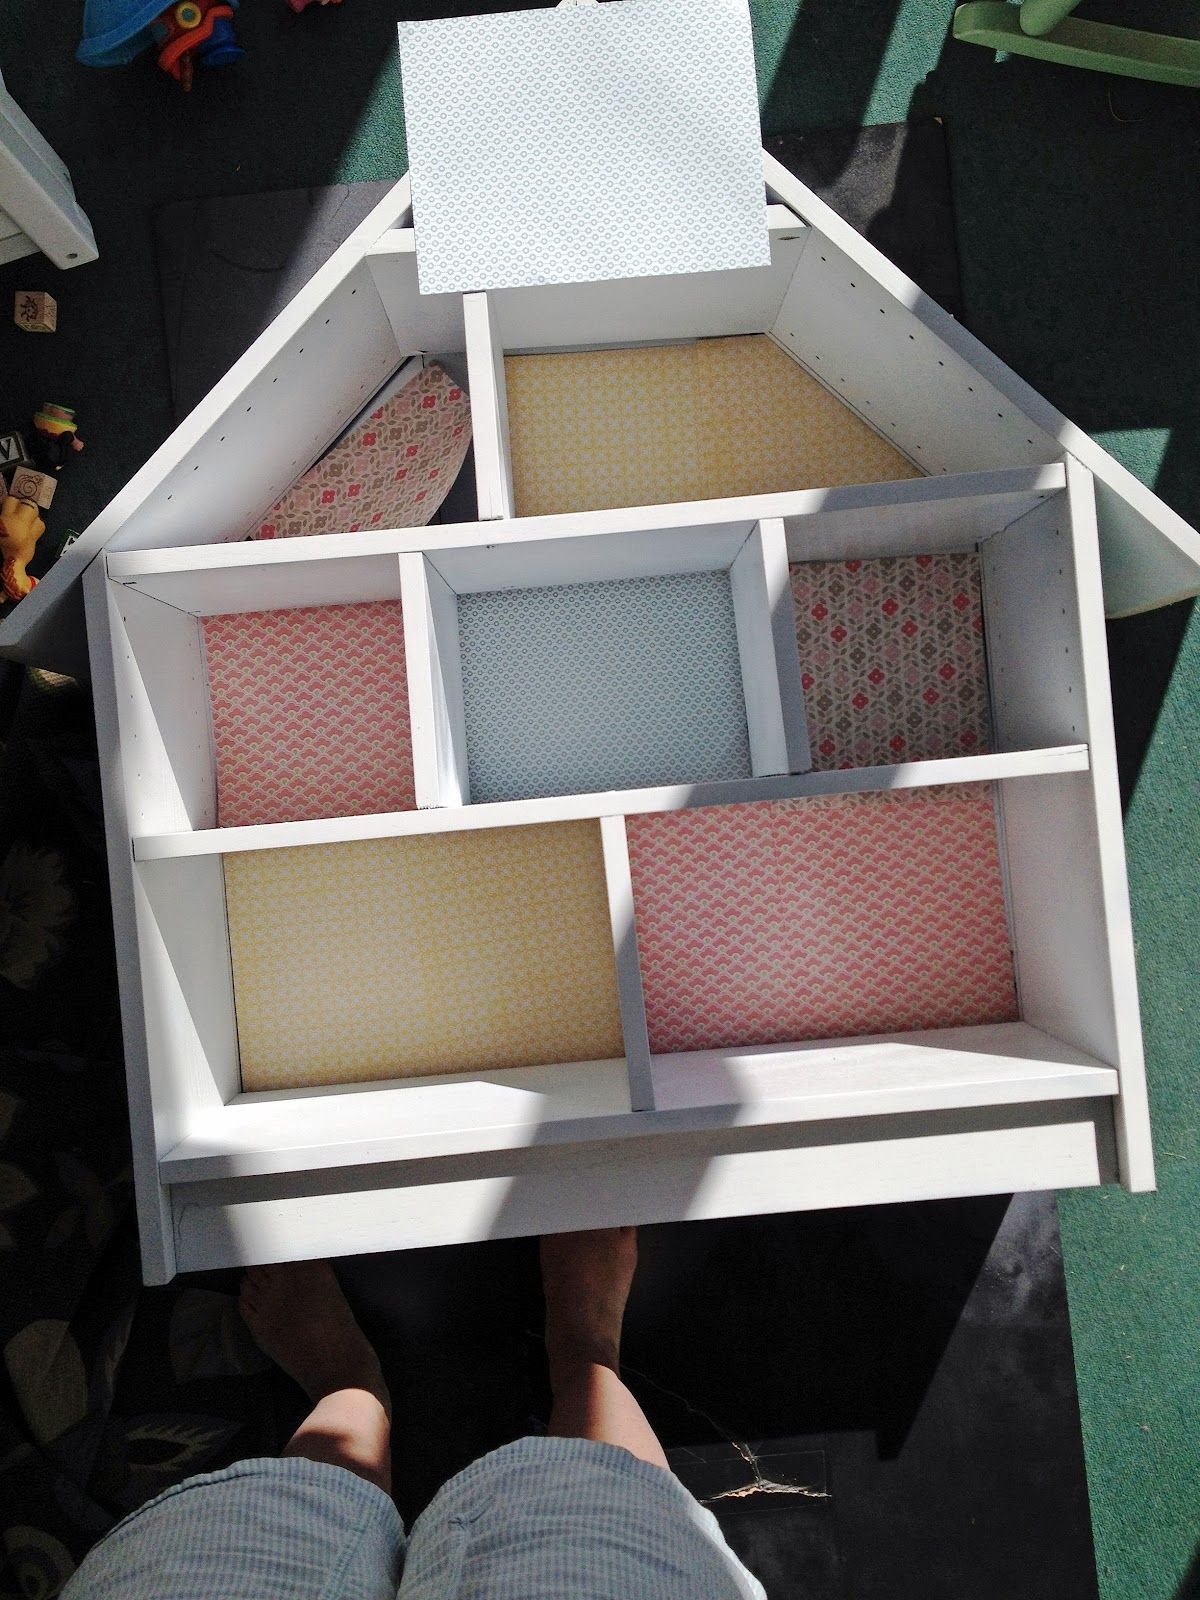 dolls house furniture ikea. Building A Dollhouse From Ikea Bookshelves: The Pinterest Challenge Dolls House Furniture